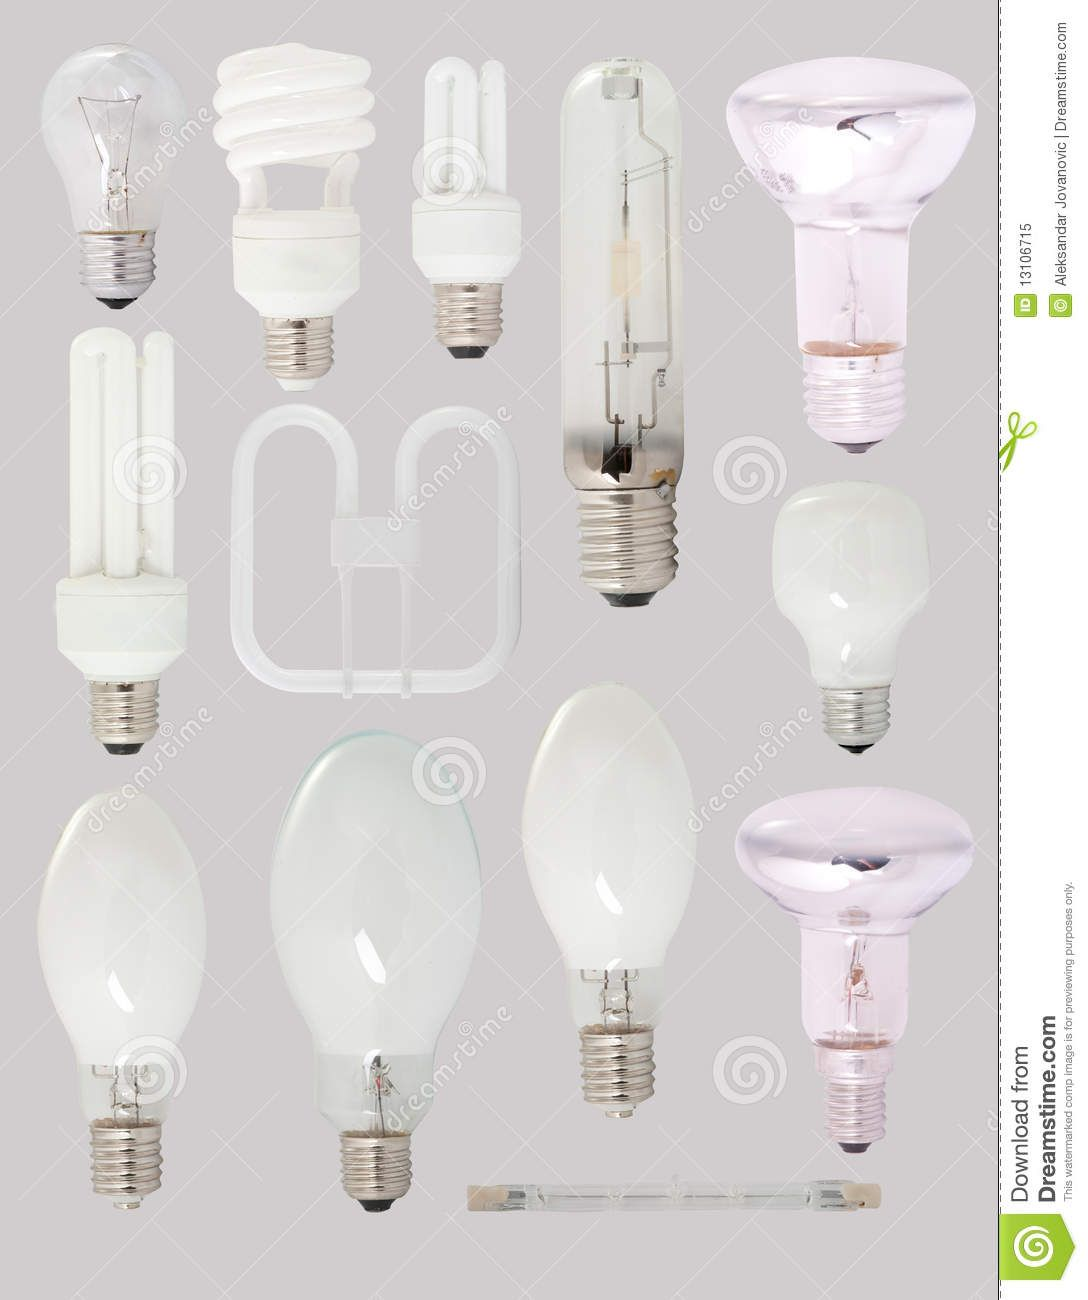 Learn About All The Different Types Of Light Bulbs